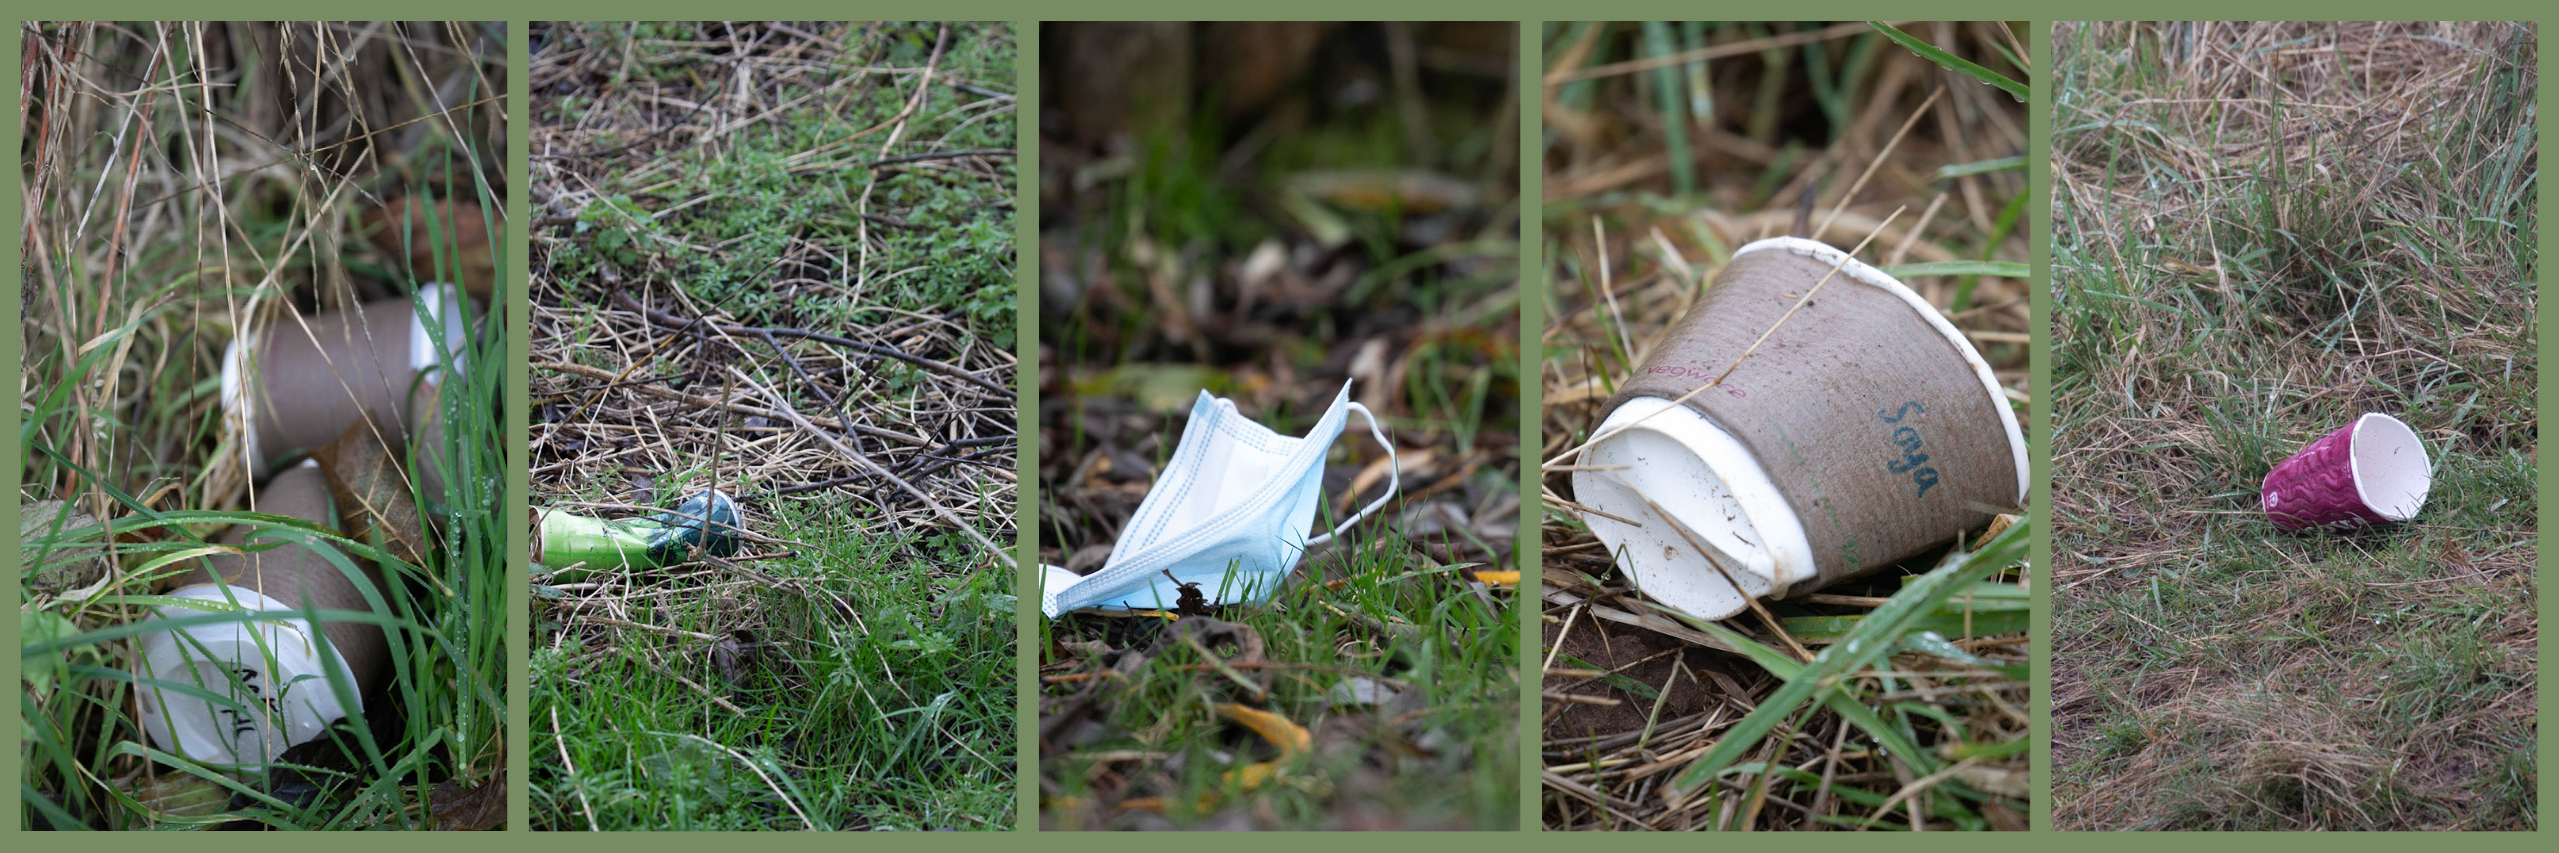 Five pictures of cups, cider cans and masks dropped on the ground.